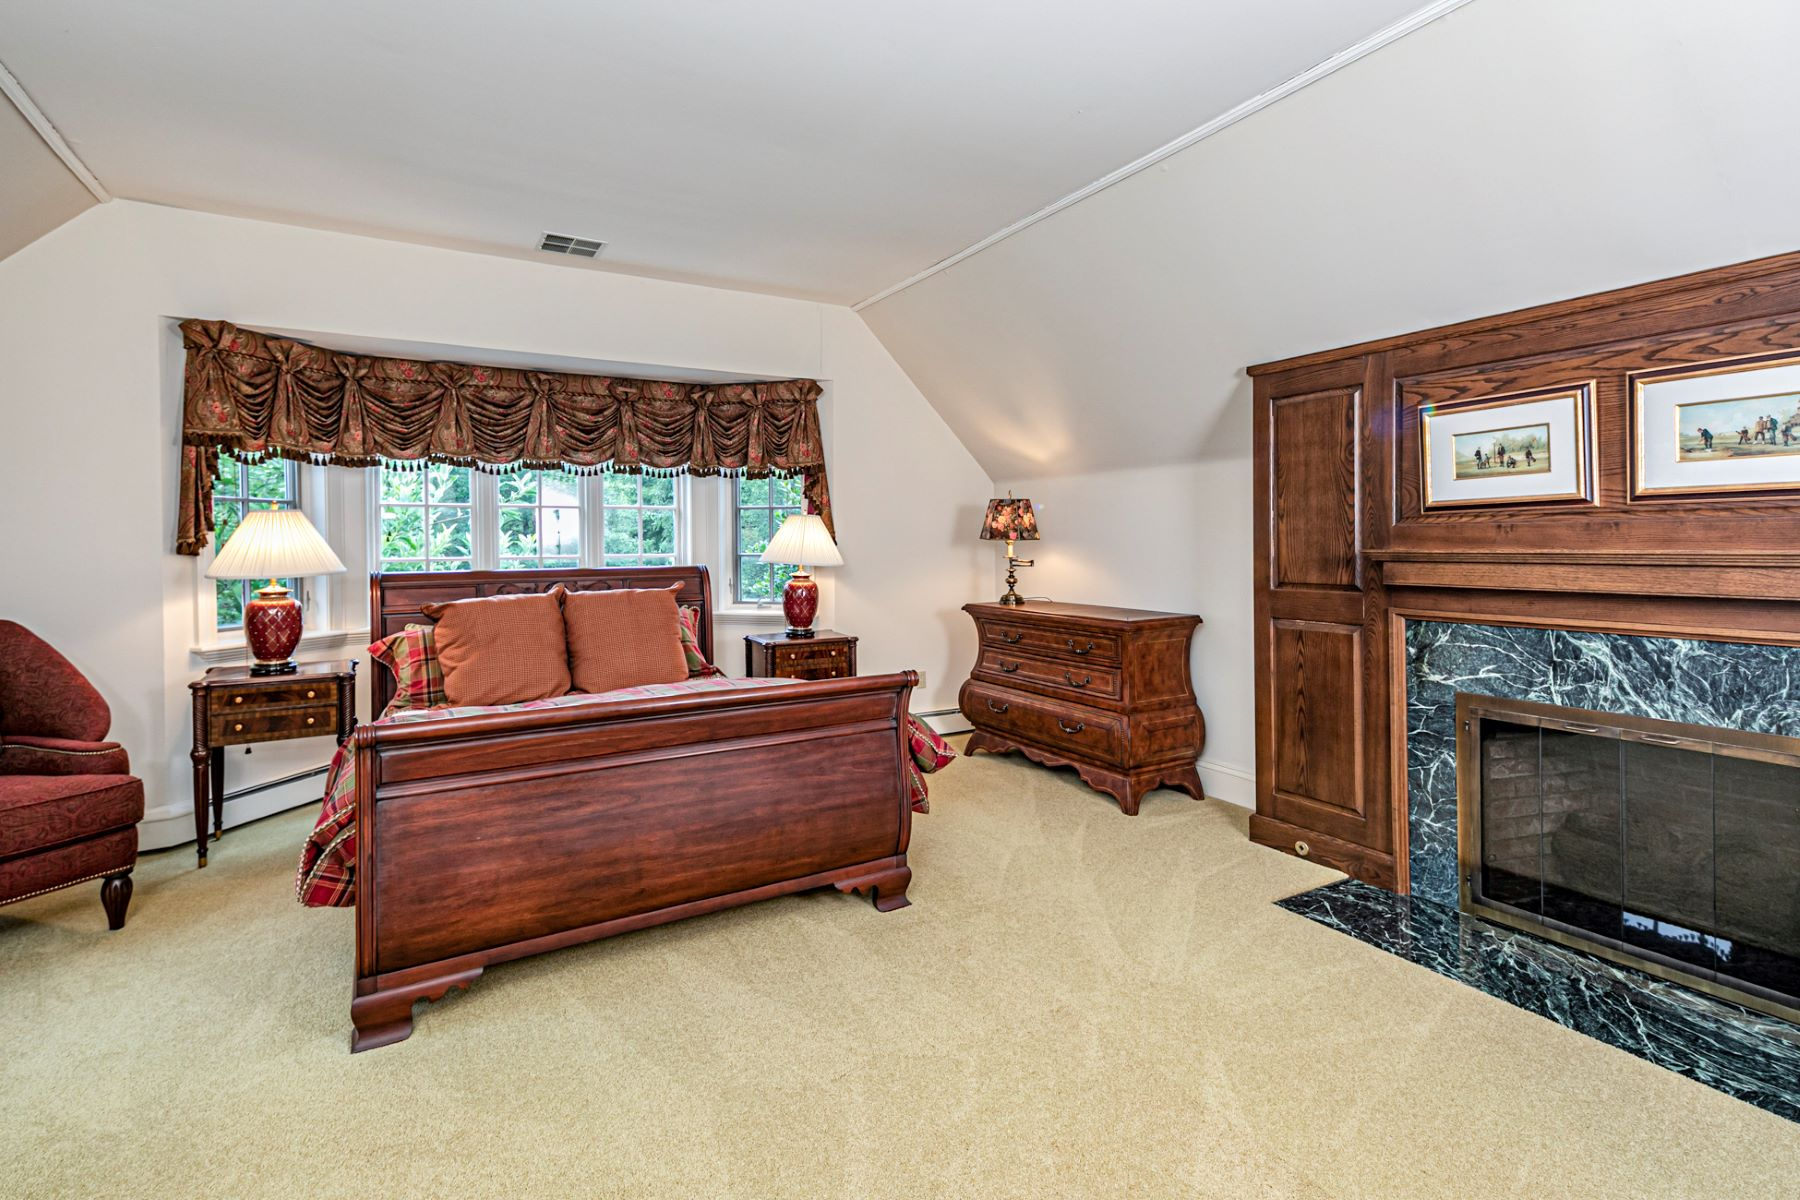 Additional photo for property listing at Private Compound with Every Amenity Imaginable 82 Aunt Molly Road Hopewell, New Jersey 08525 United States